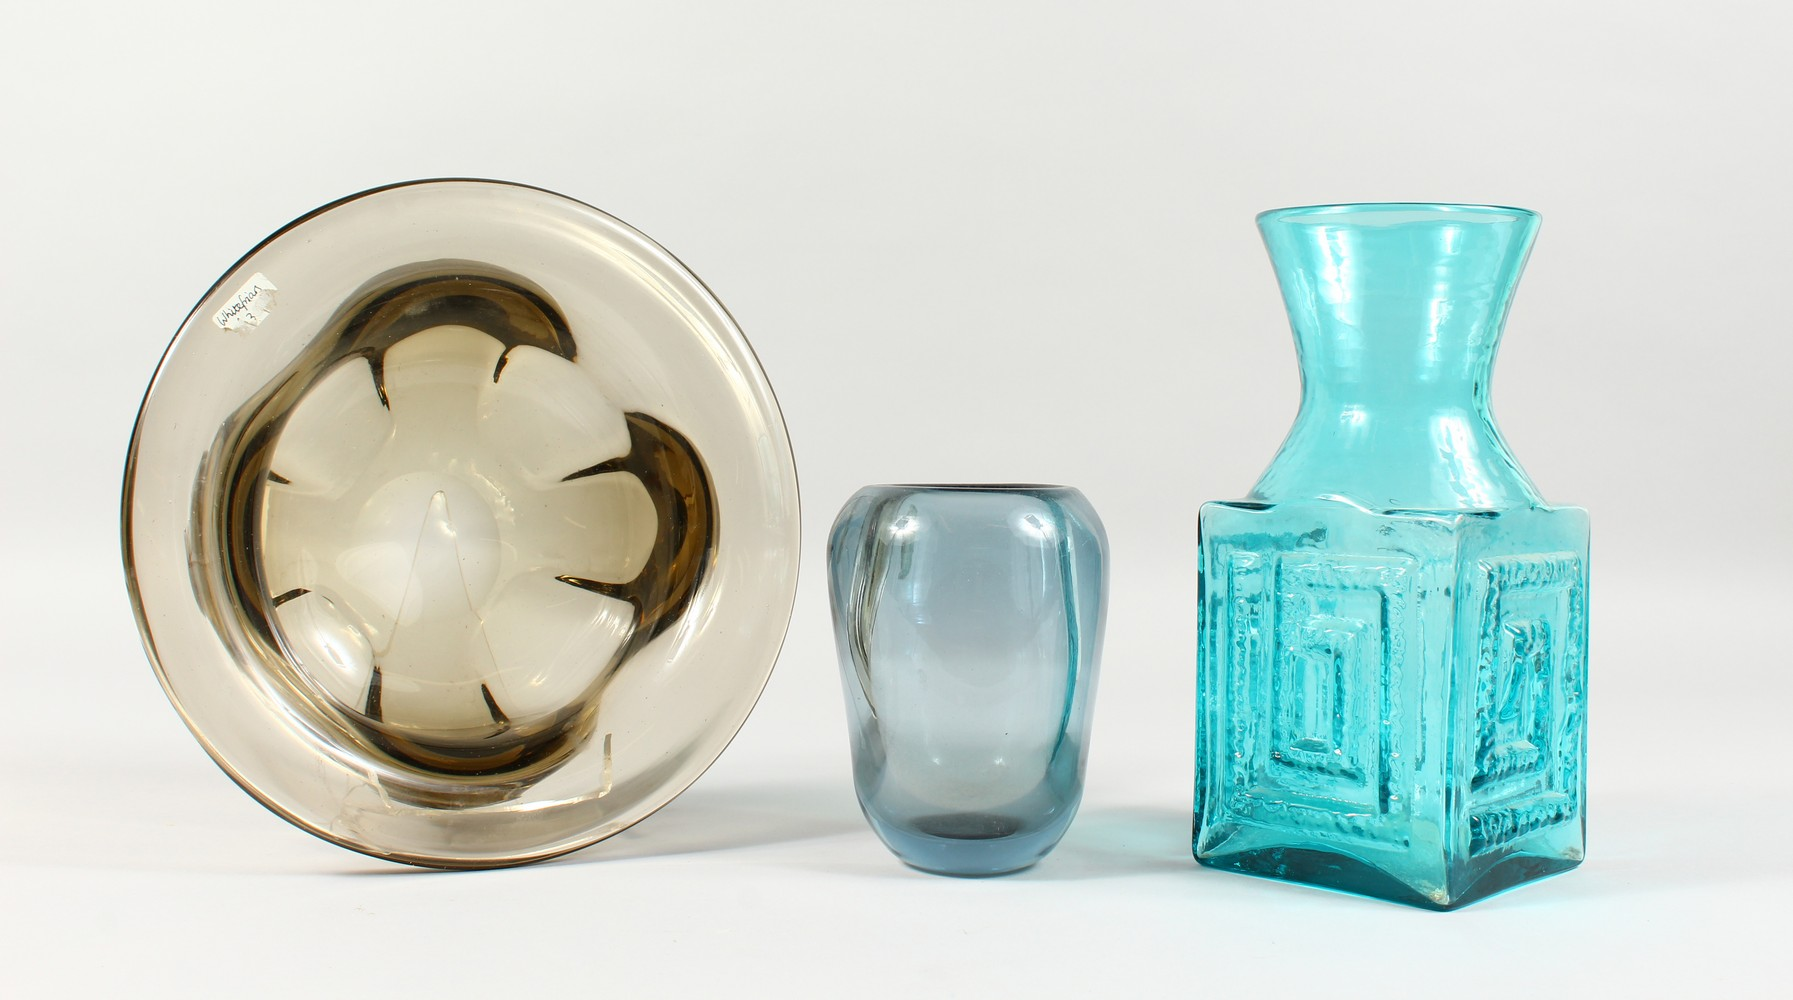 Lot 1060 - GEOFFREY BAXTER FOR WHITEFRIARS, a moulded turquoise glass vase, and two other items of